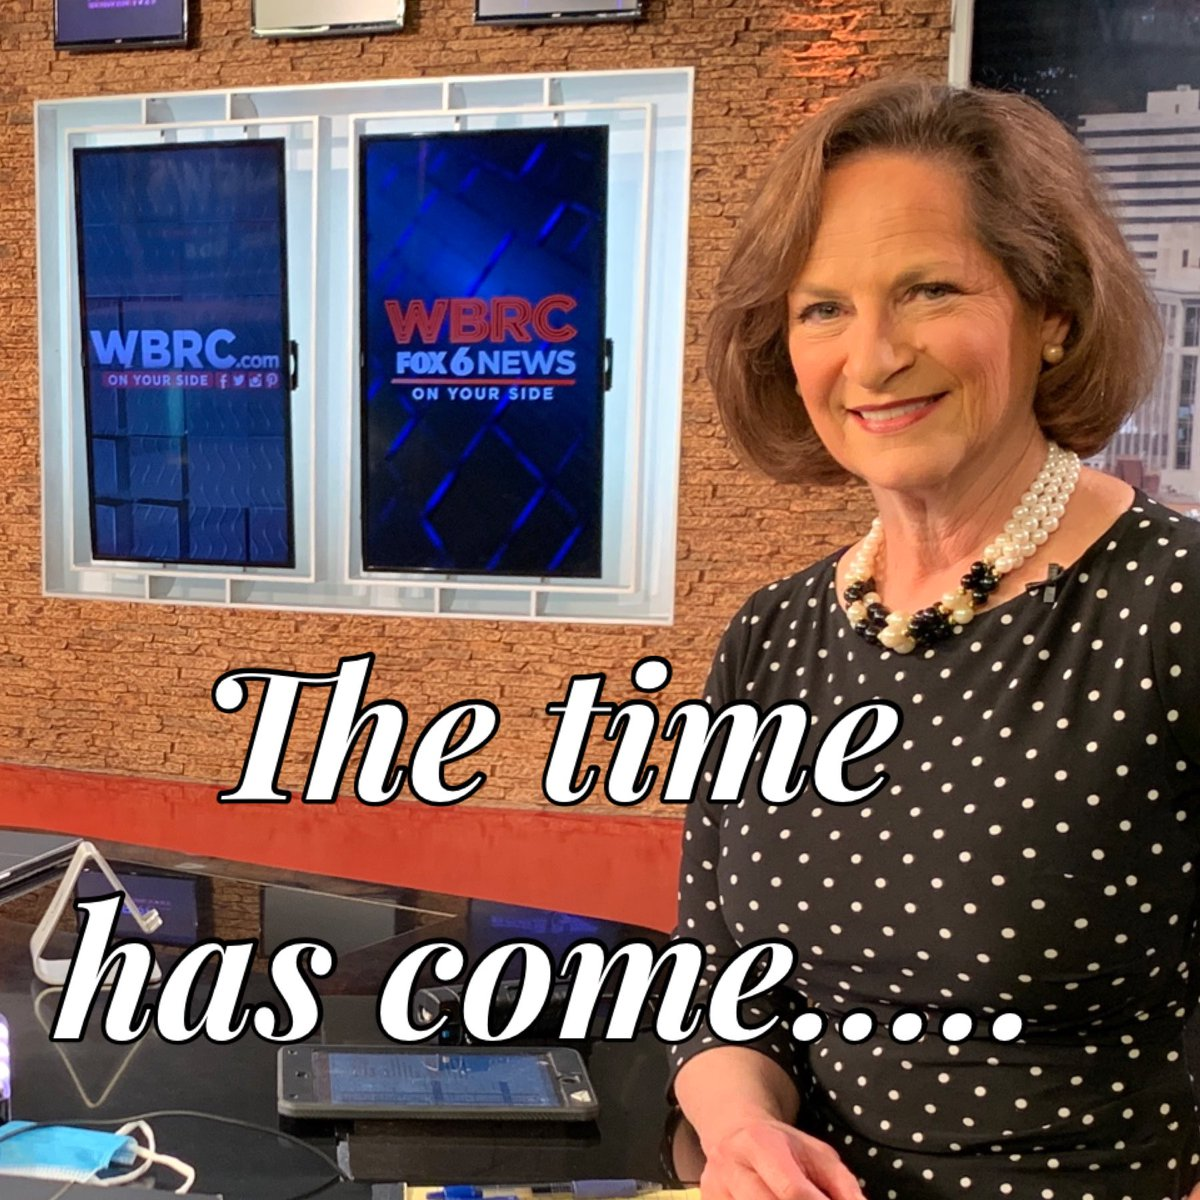 After 40 wonderful years @WBRC I'll be retiring at the end of August. It's a tough decision to leave the co-workers and viewers I love but it is time to open myself to new adventures. But, I ain't gone yet! Stay tuned for a long goodbye this summer. pic.twitter.com/JKTM8GGo4u